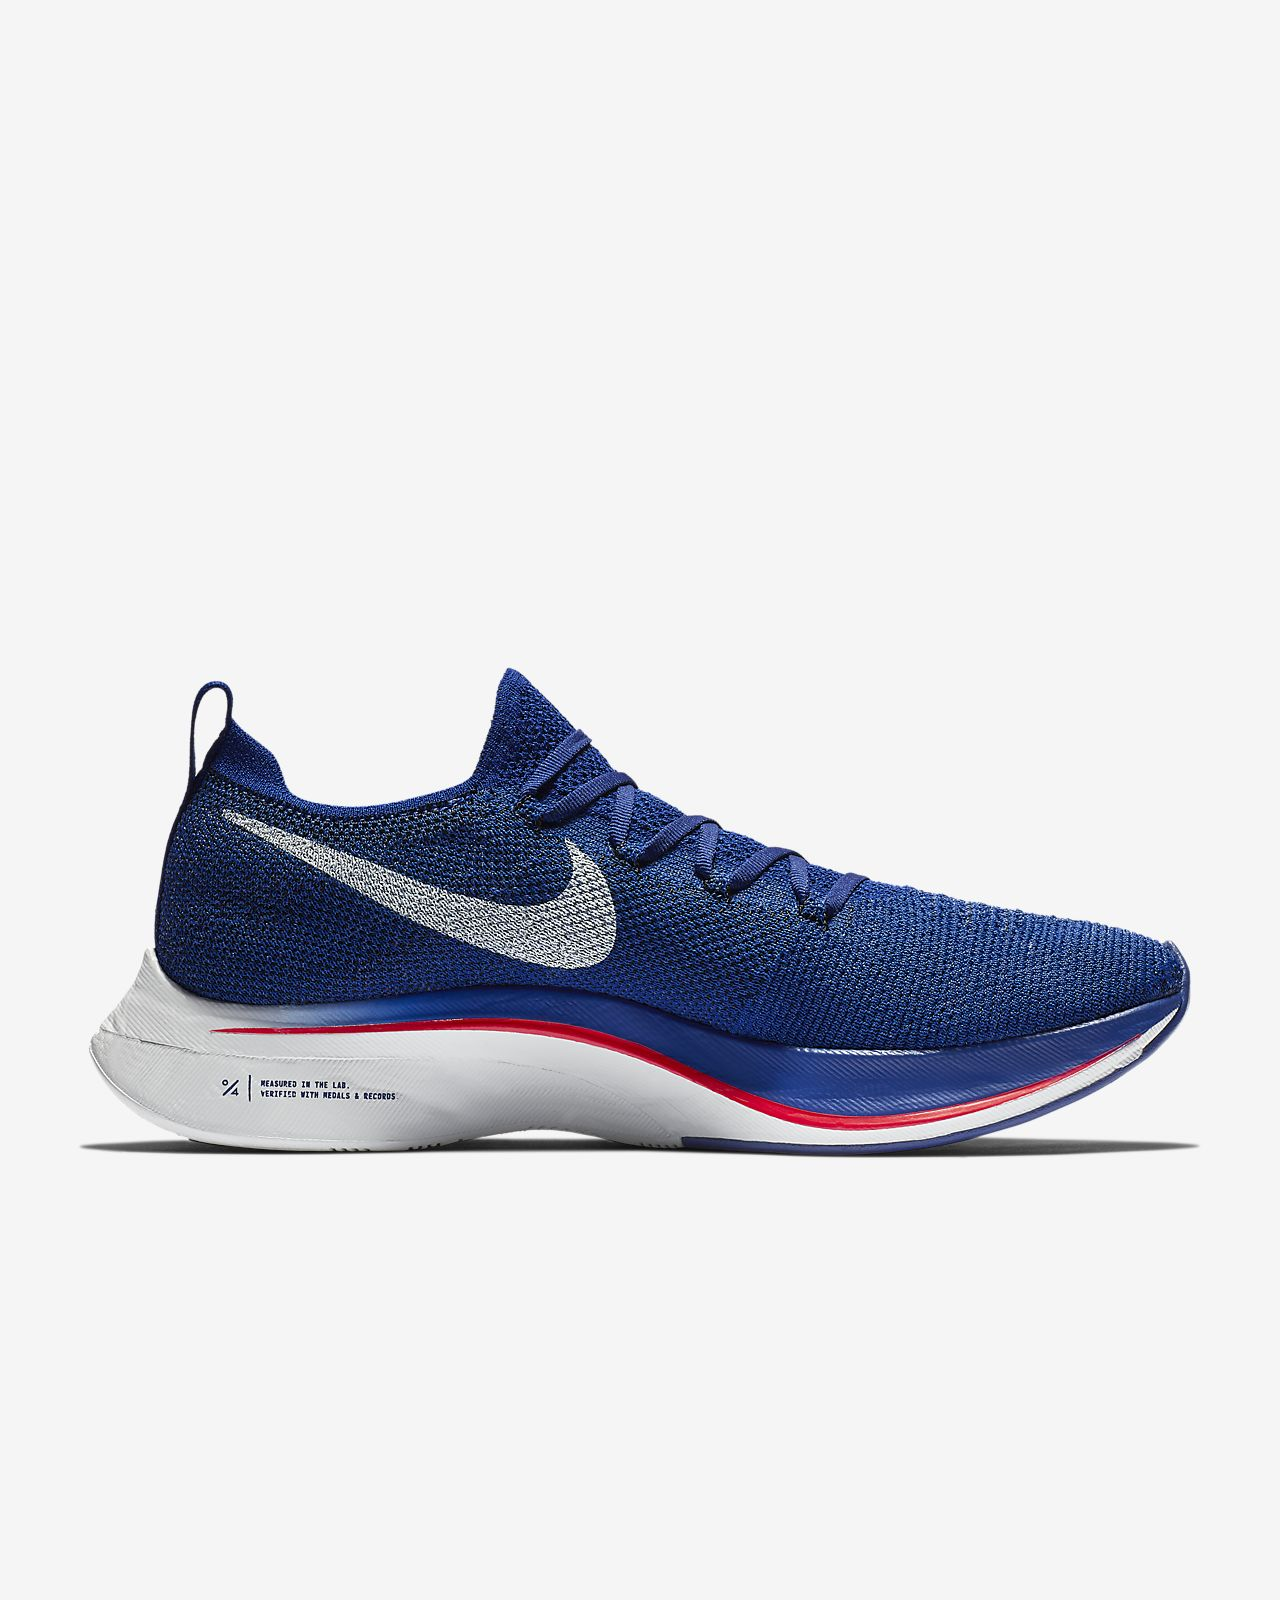 on sale cabef 9a649 ... Nike Vaporfly 4% Flyknit Running Shoe